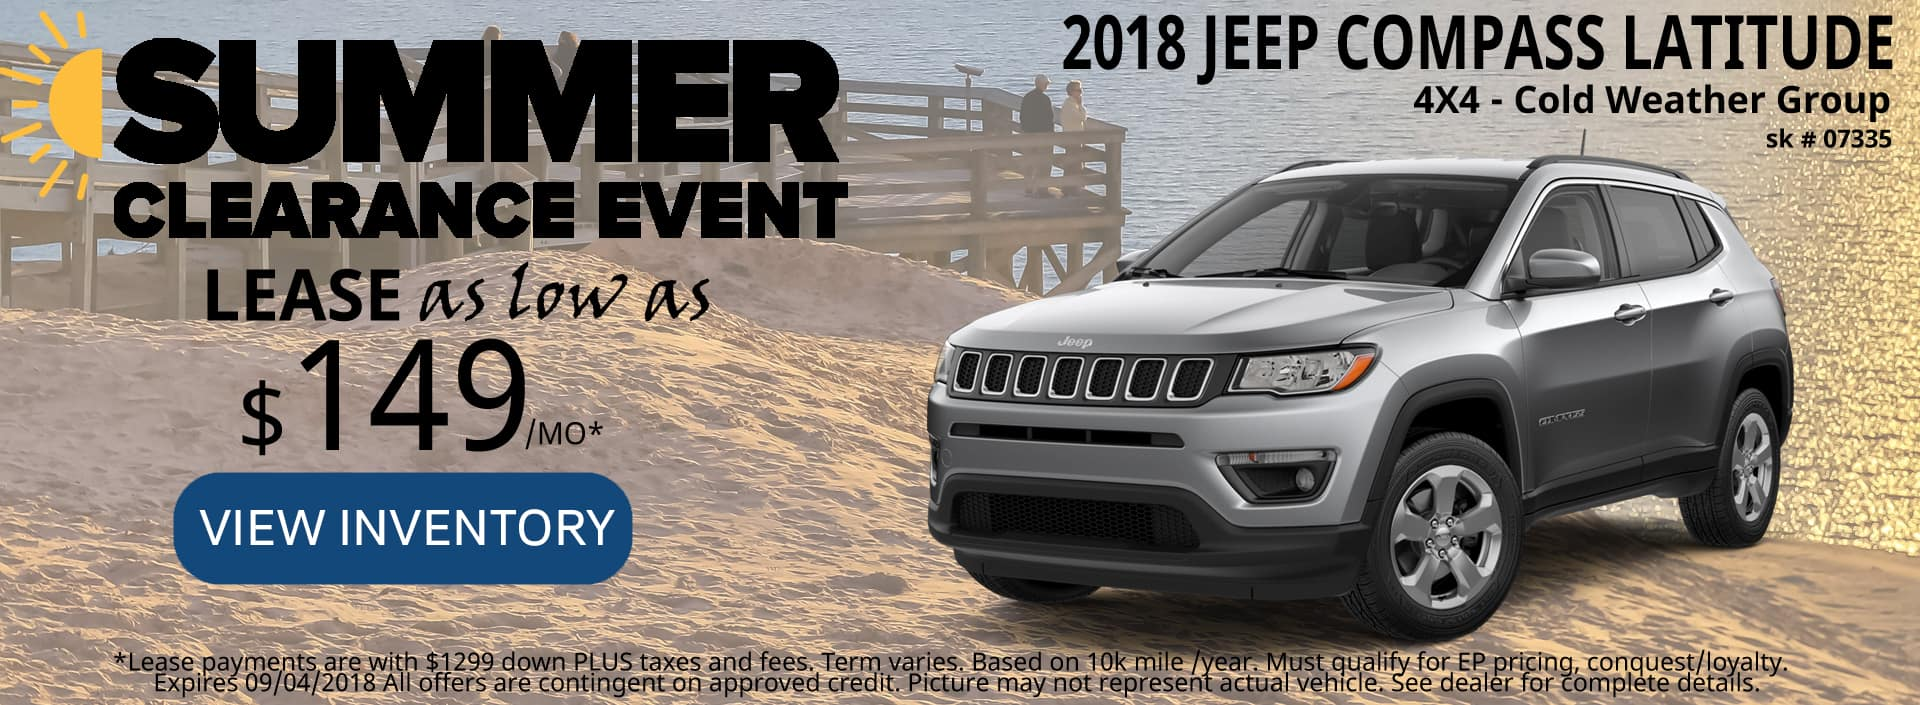 August 2018 Special NEW Jeep Compass